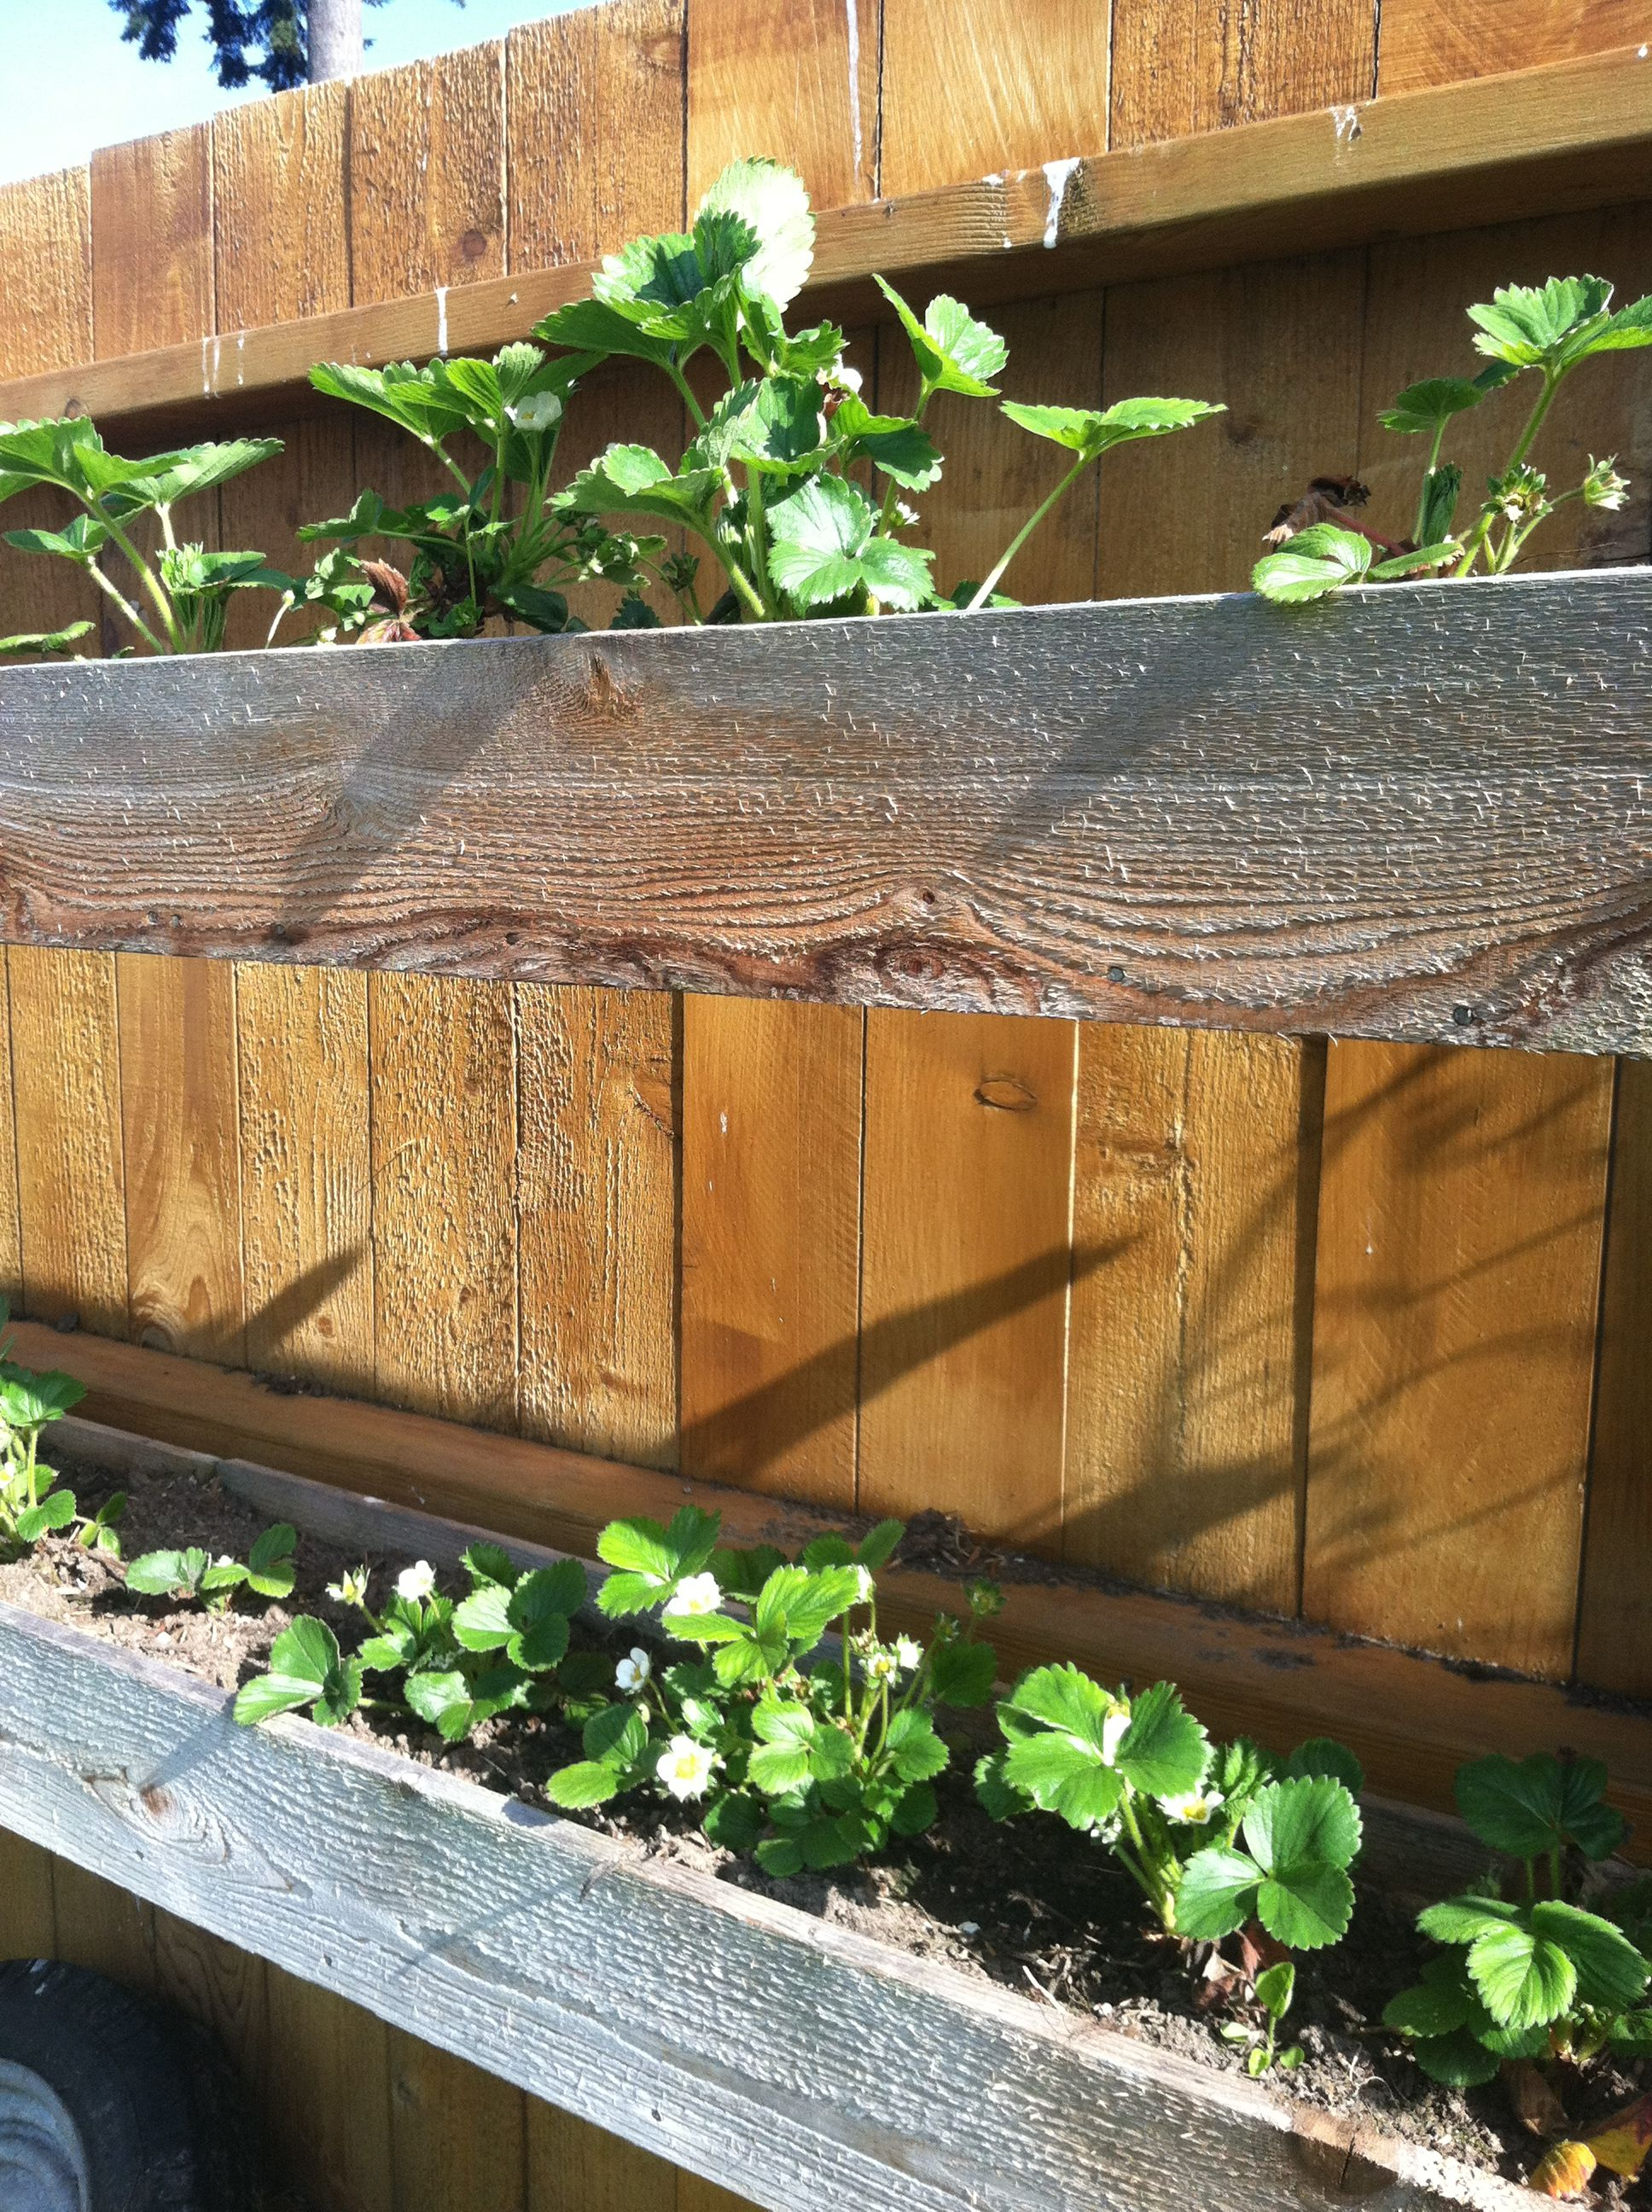 Strawberry Plants In Box Hanging Fence. Save